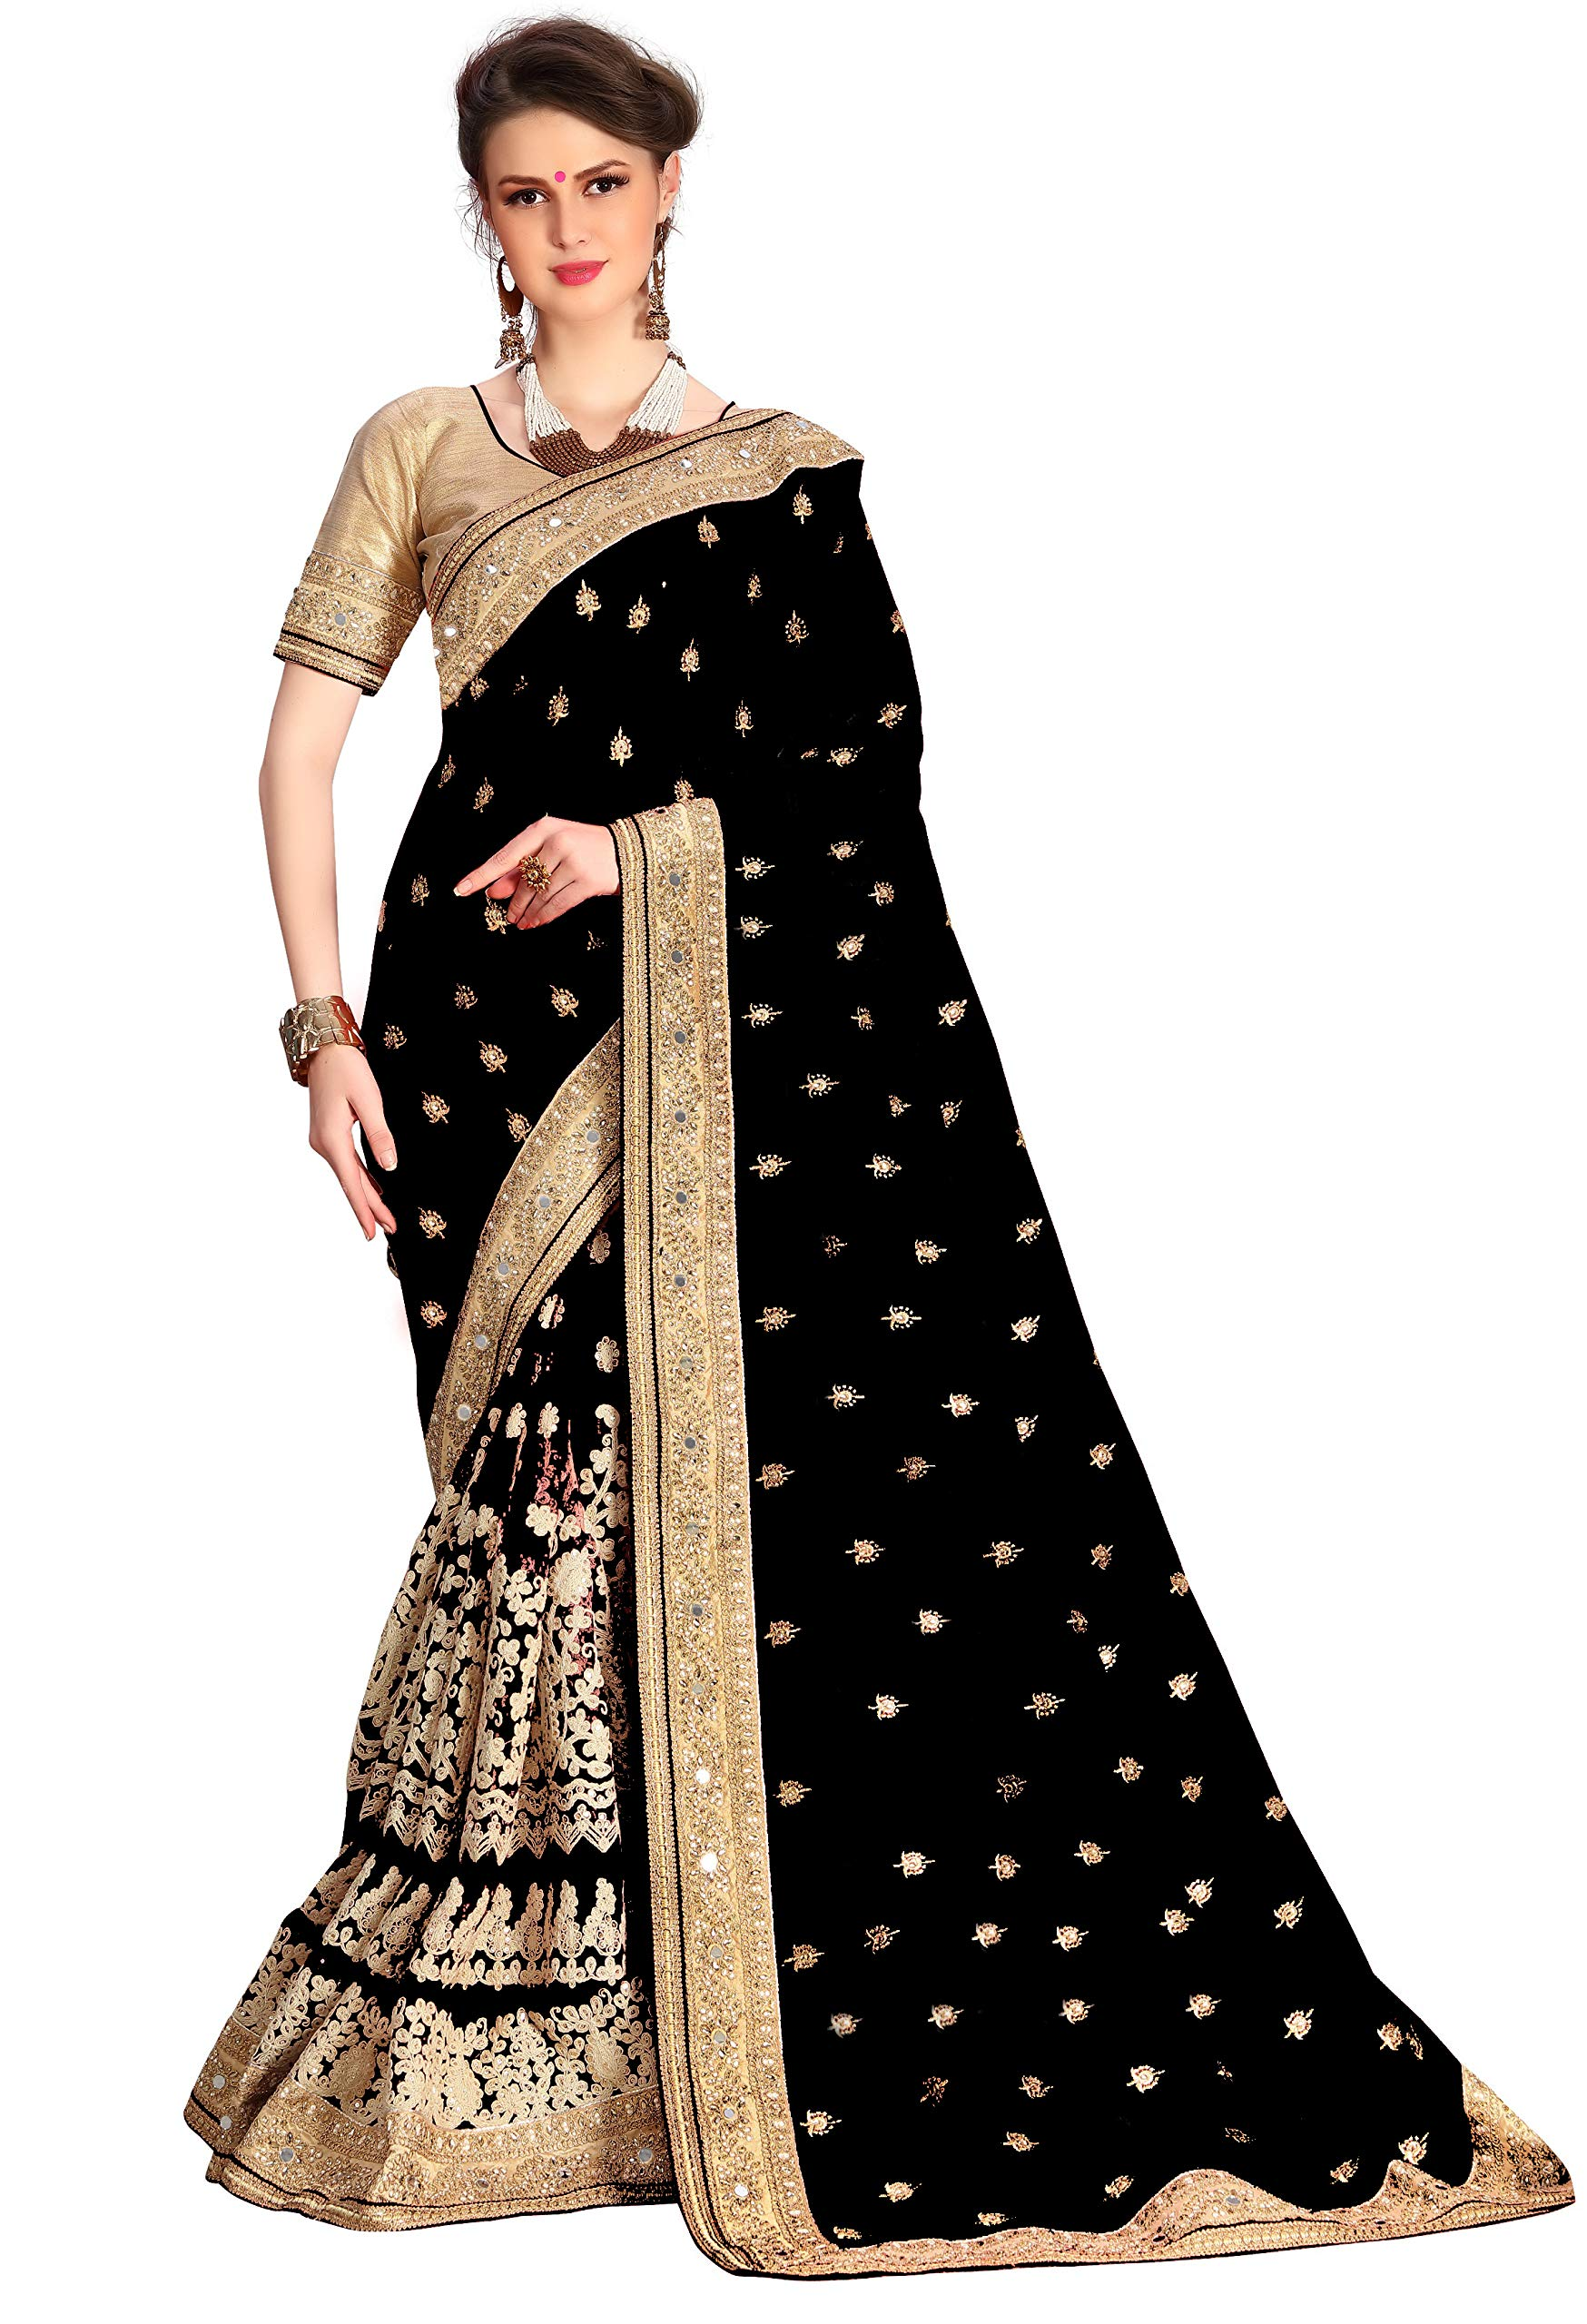 Nivah Fashion Women's Dhupion Silk & Net Half N Half Real Diamond With Embroidery Dori Work Saree K579(Black)